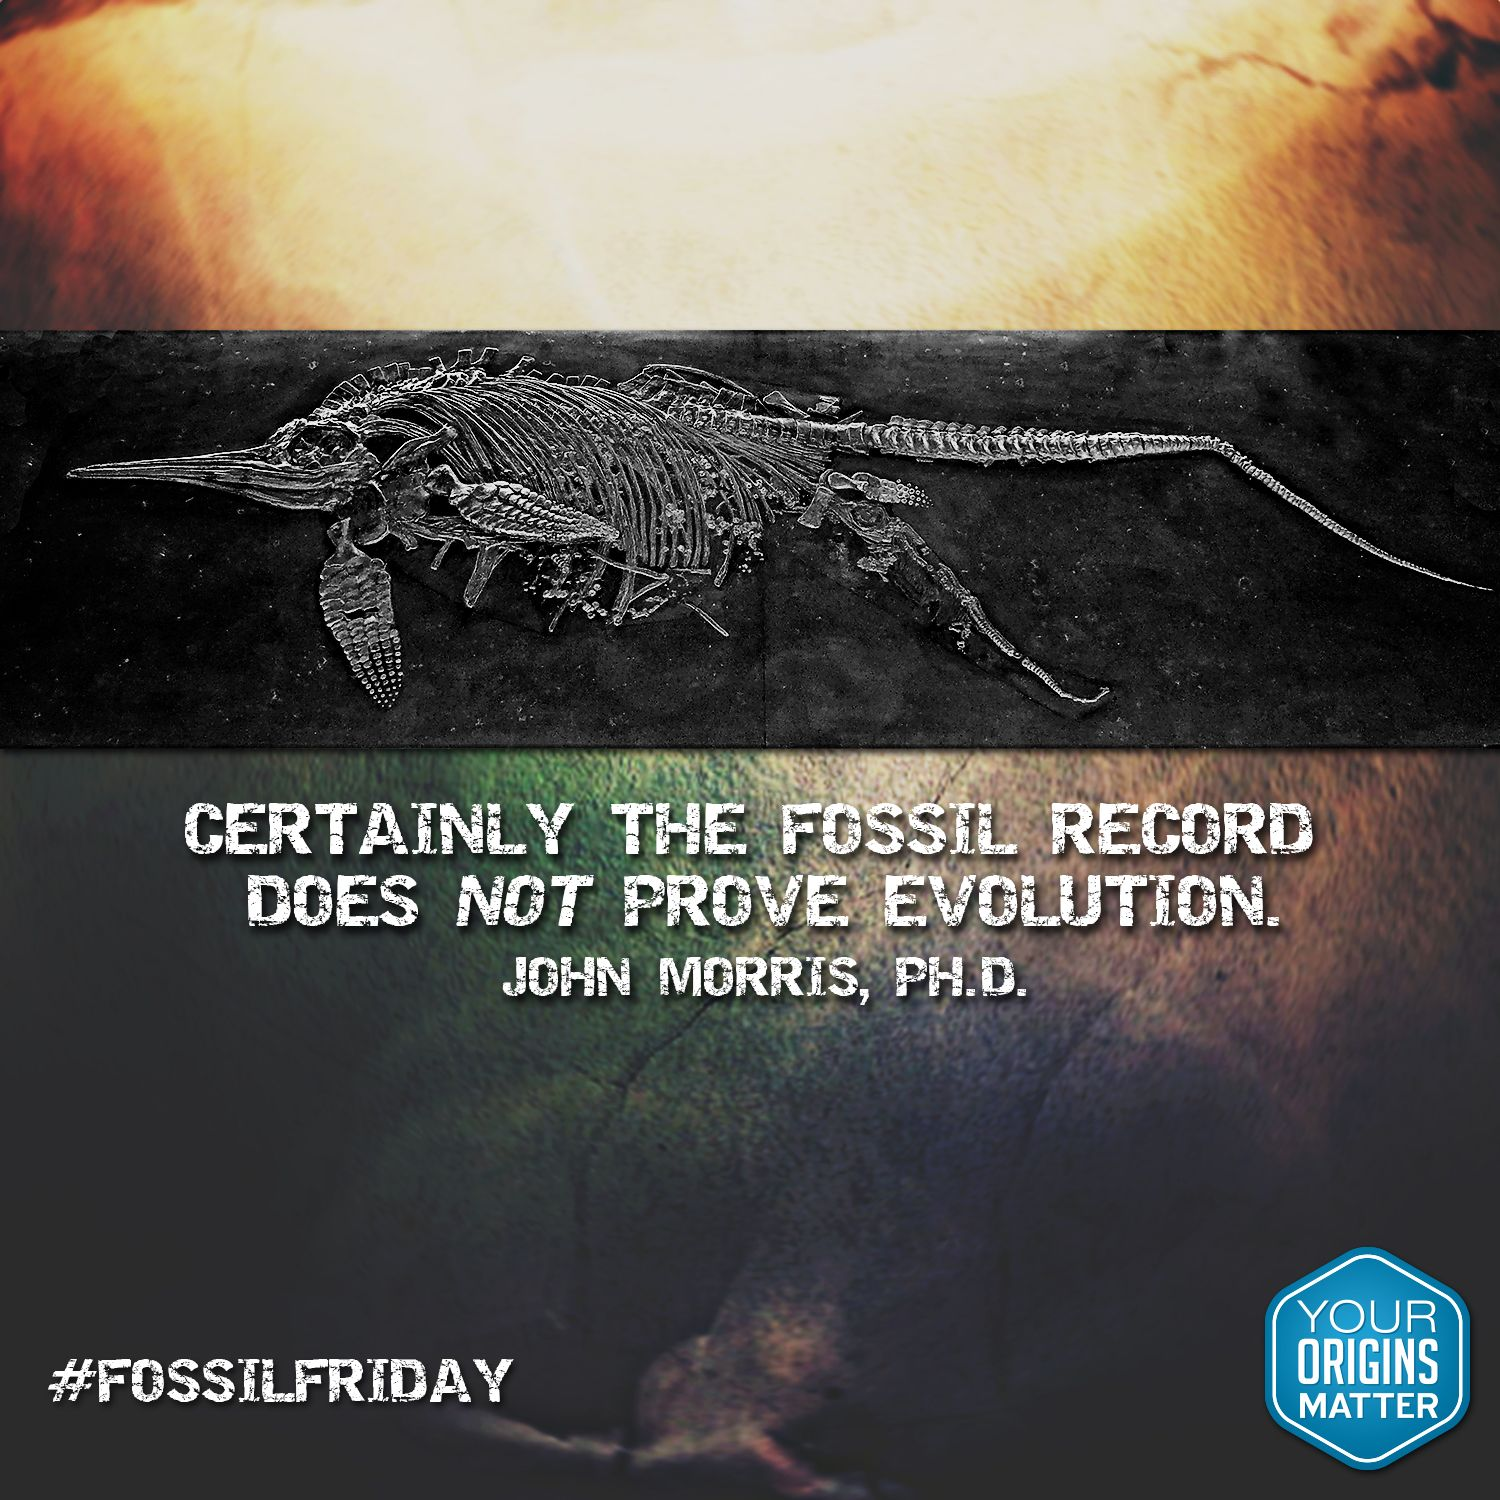 Don T The Fossils Prove Evolution